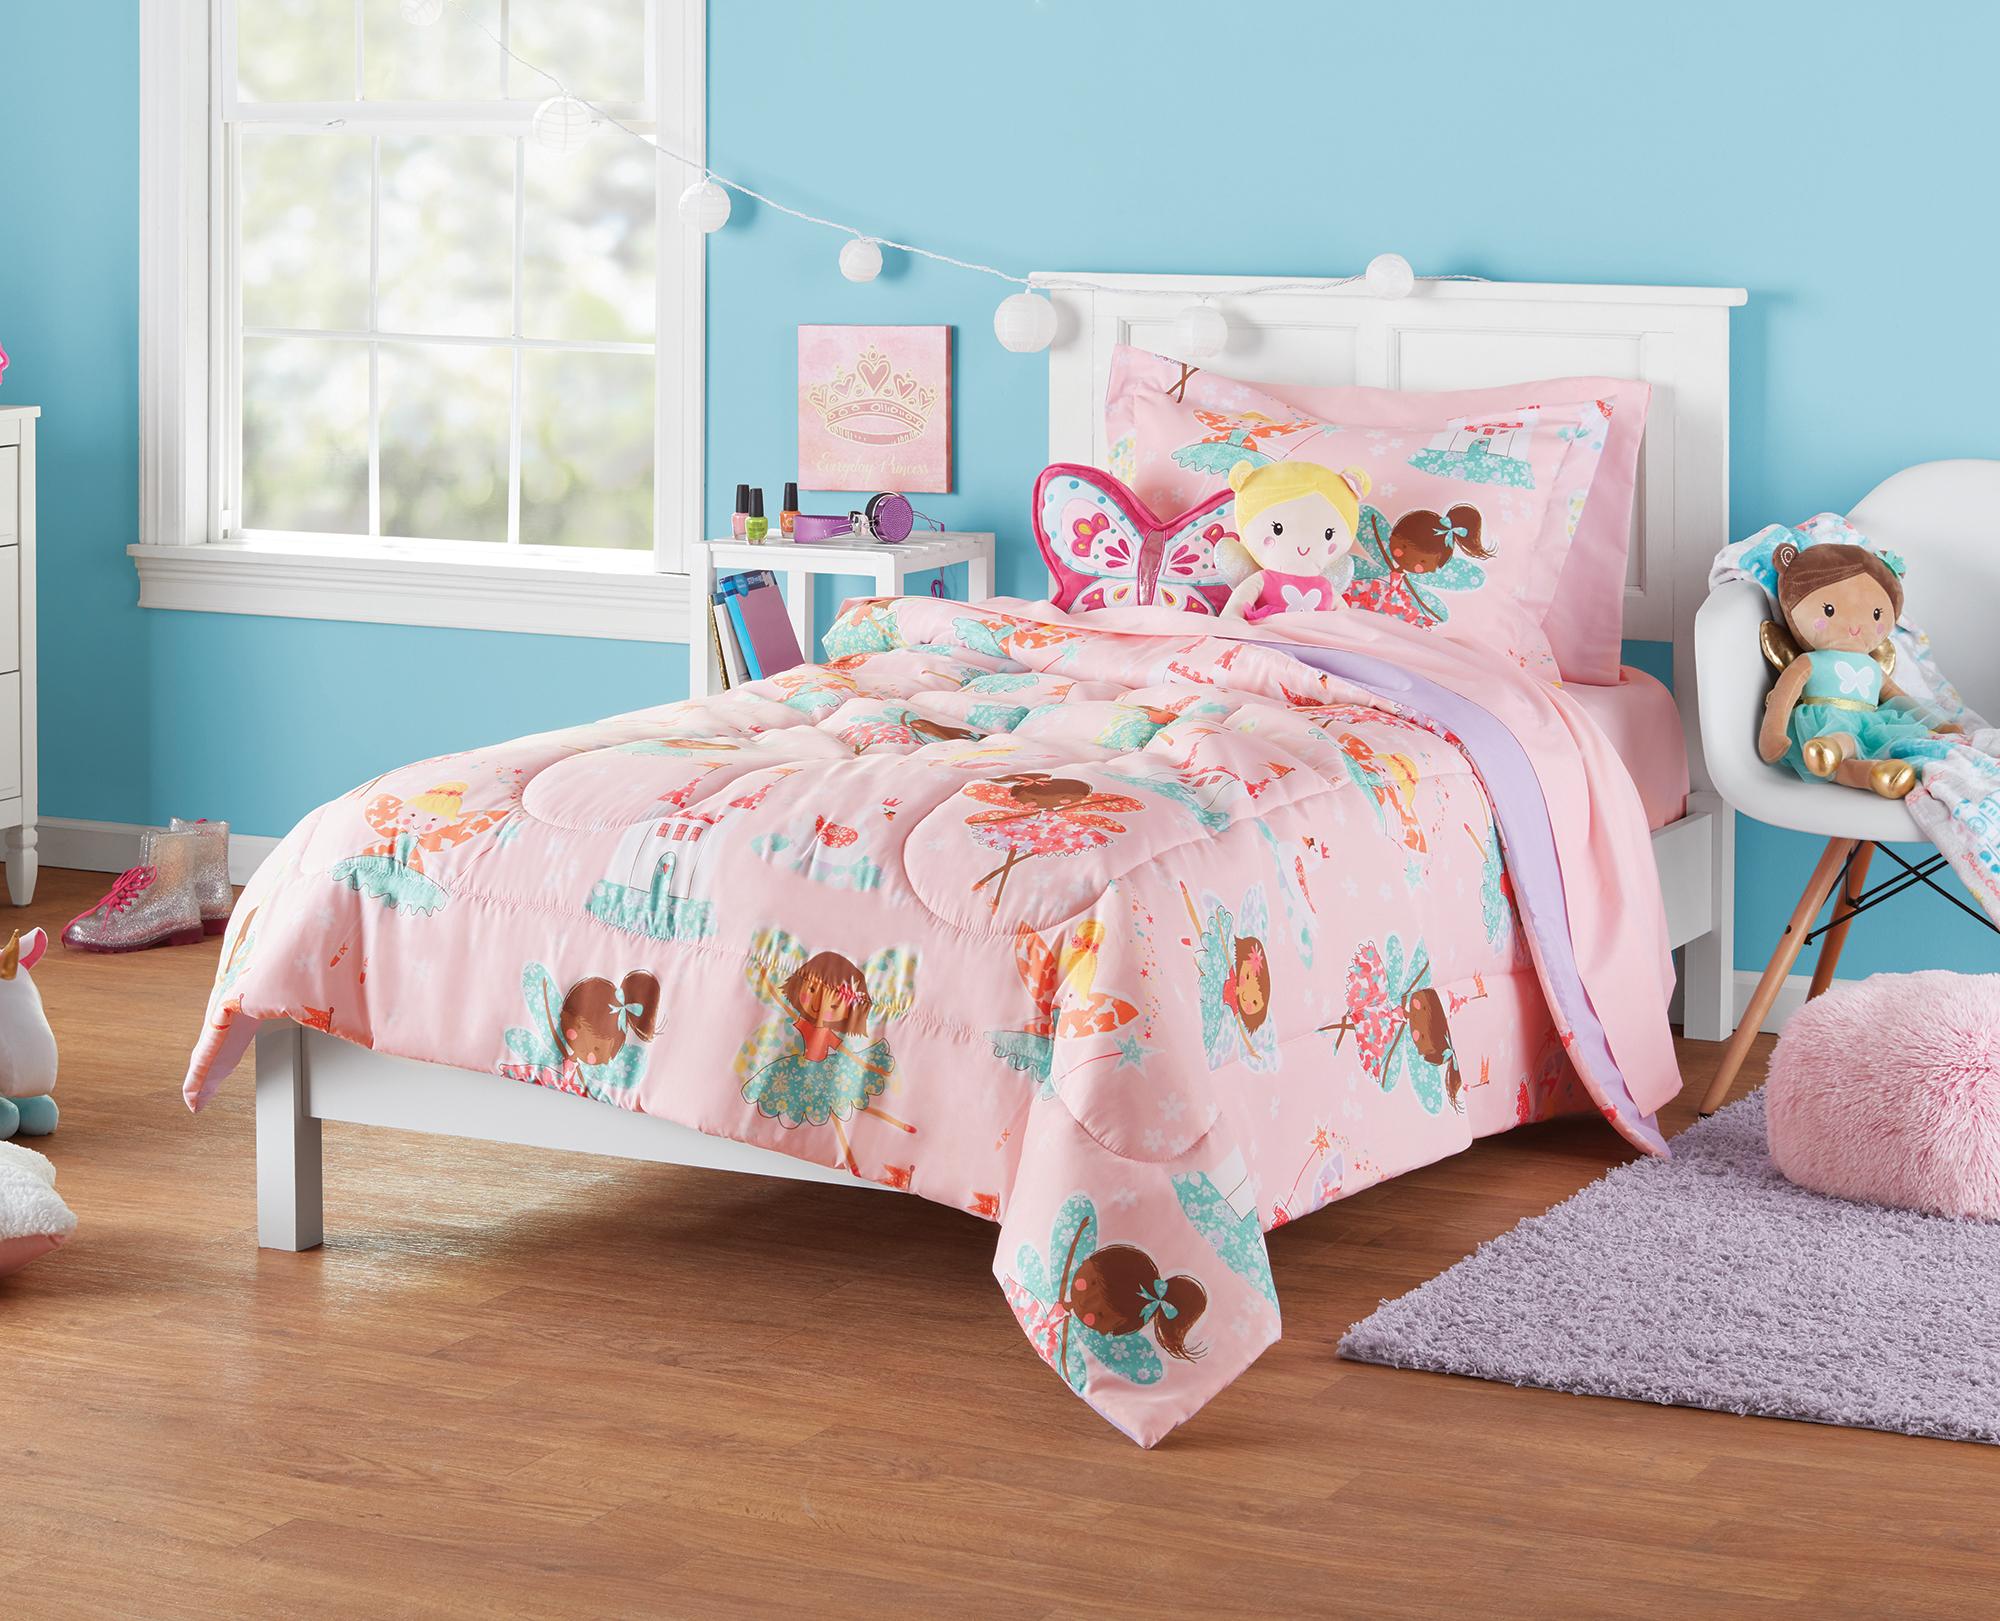 REDUCED T0 SELL American Jane Child/'s bed comforter for TWIN bed